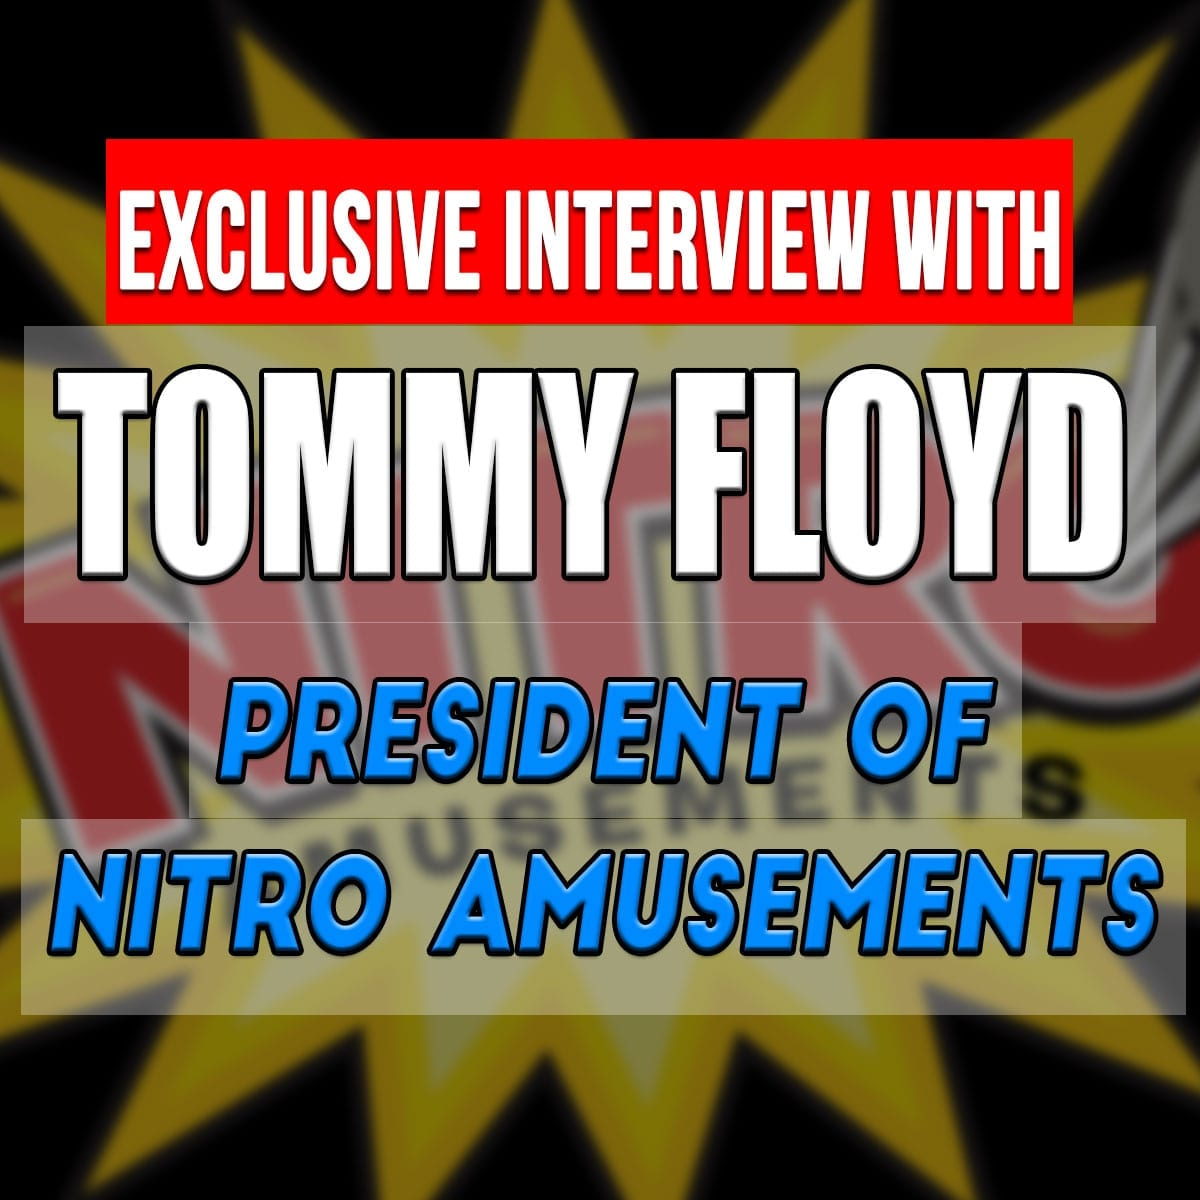 Exclusive Interviews Pictures More: Exclusive Interview With Tommy Floyd, President Of Nitro